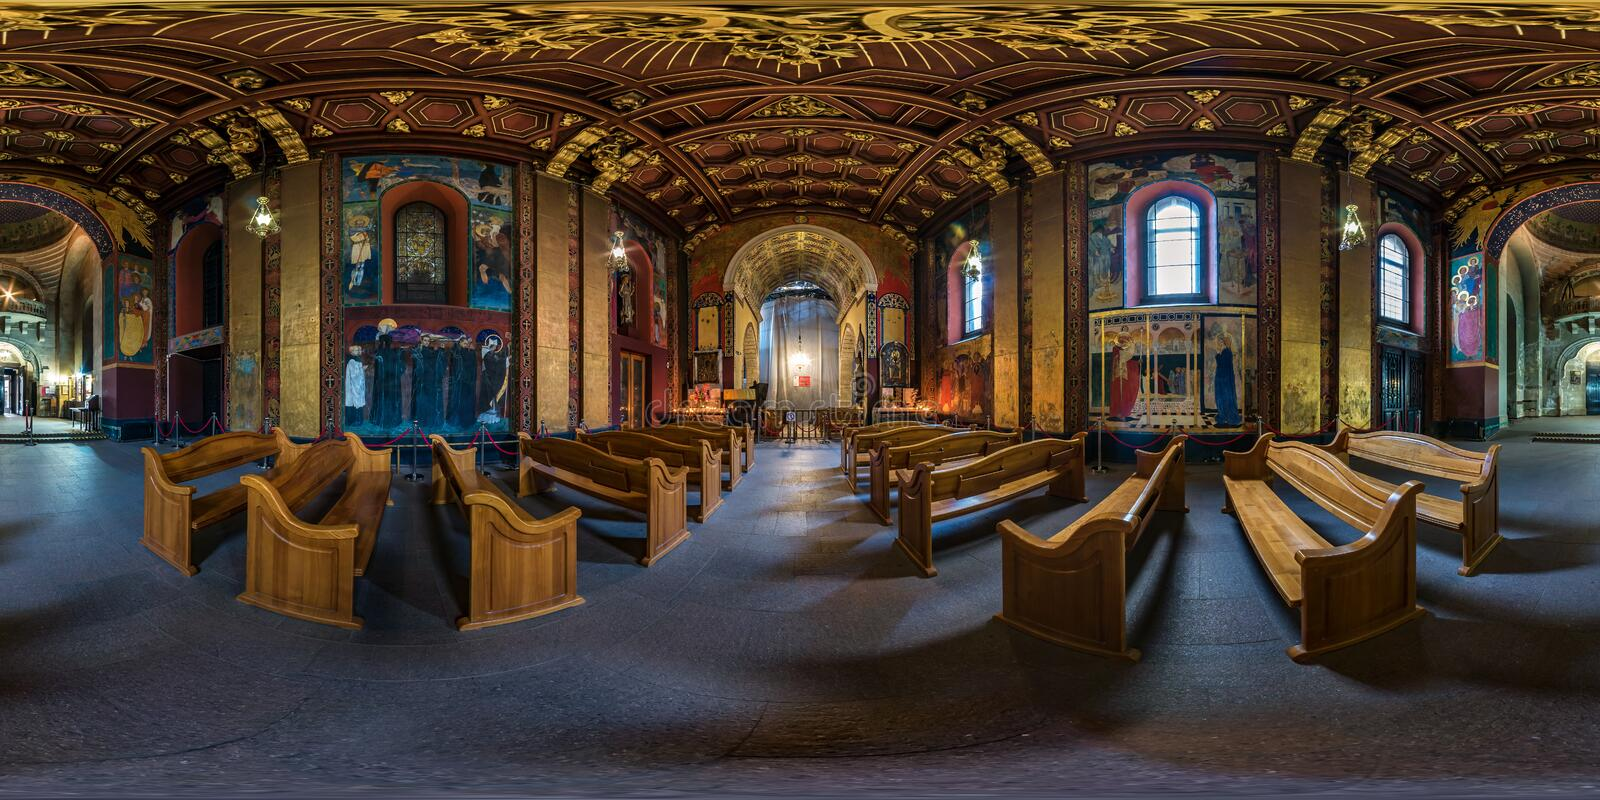 LVIV, UKRAINE - AUGUST 2019: Full spherical seamless hdri panorama 360 degrees inside interior of old Armenian church in. Equirectangular projection, VR AR stock photography